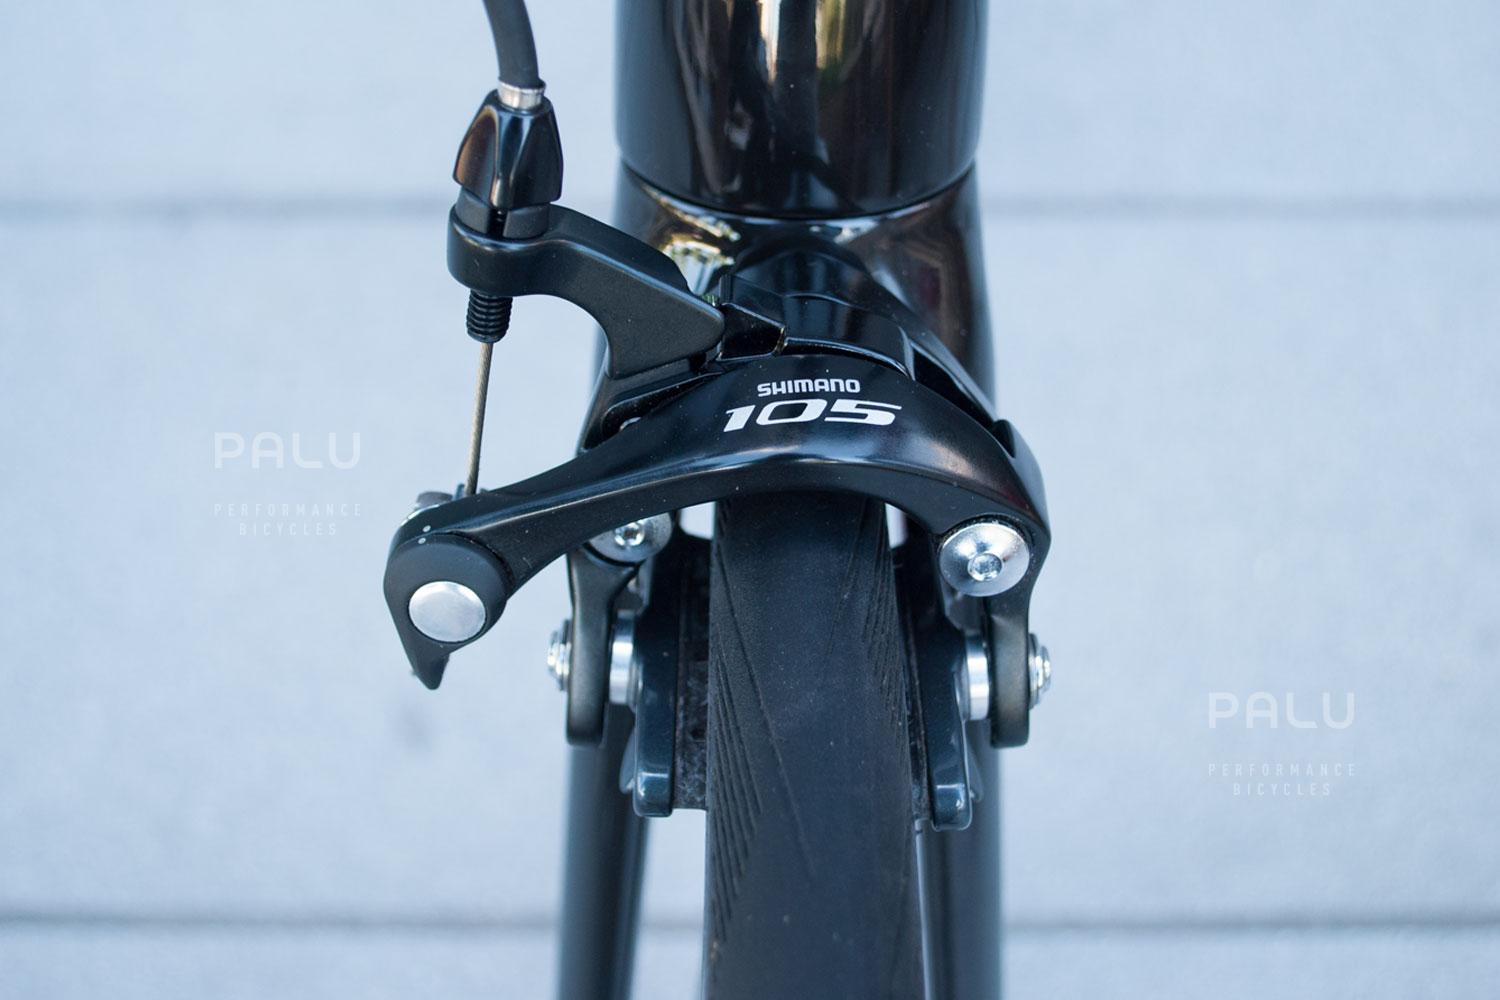 Palu-Pb002-Dedacciai-Carbon-Fibre-3k-Italian-Hand-Made-In-Italy-Custom-Hand-Tailored-Frame-Shimano-Ultegra-Di2-Groupset-Equinox-Wheelset-Carbon-Fibre-Rims-Spokes-Fizik-Arione-Braided-Saddle-London-black-14.jpg